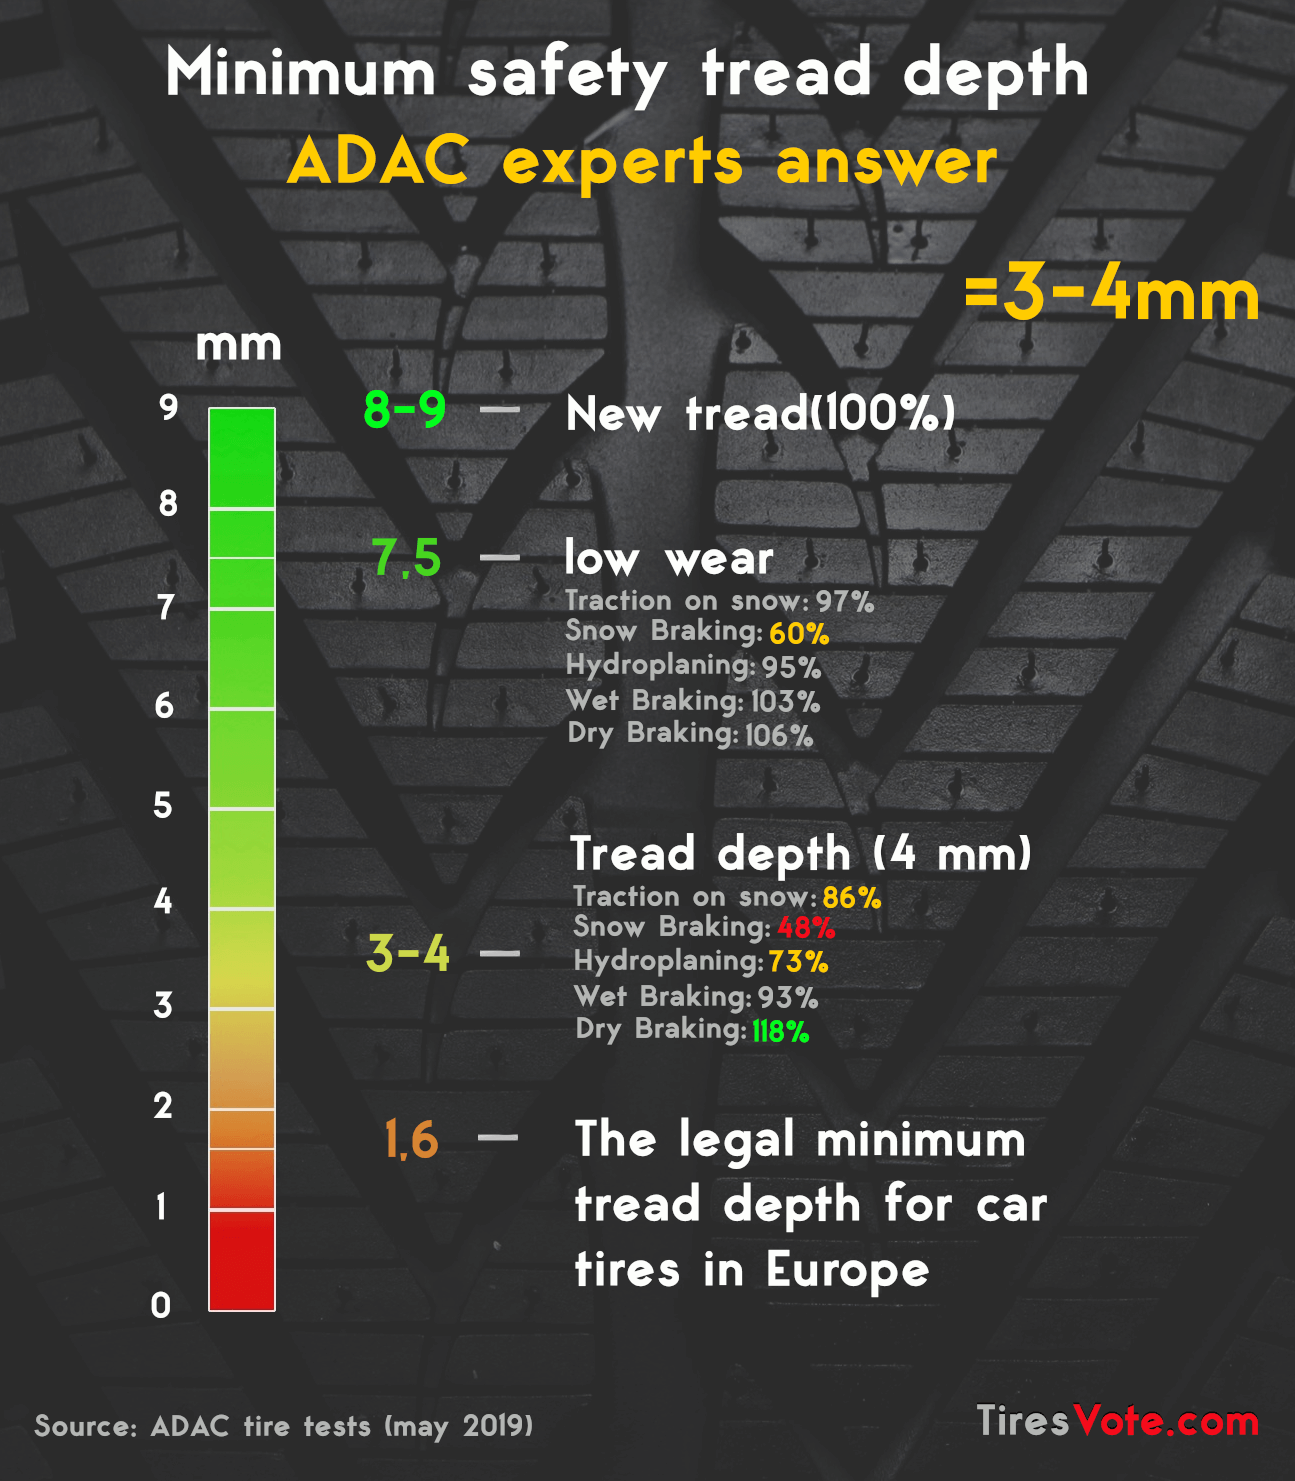 Minimum safety tread depth